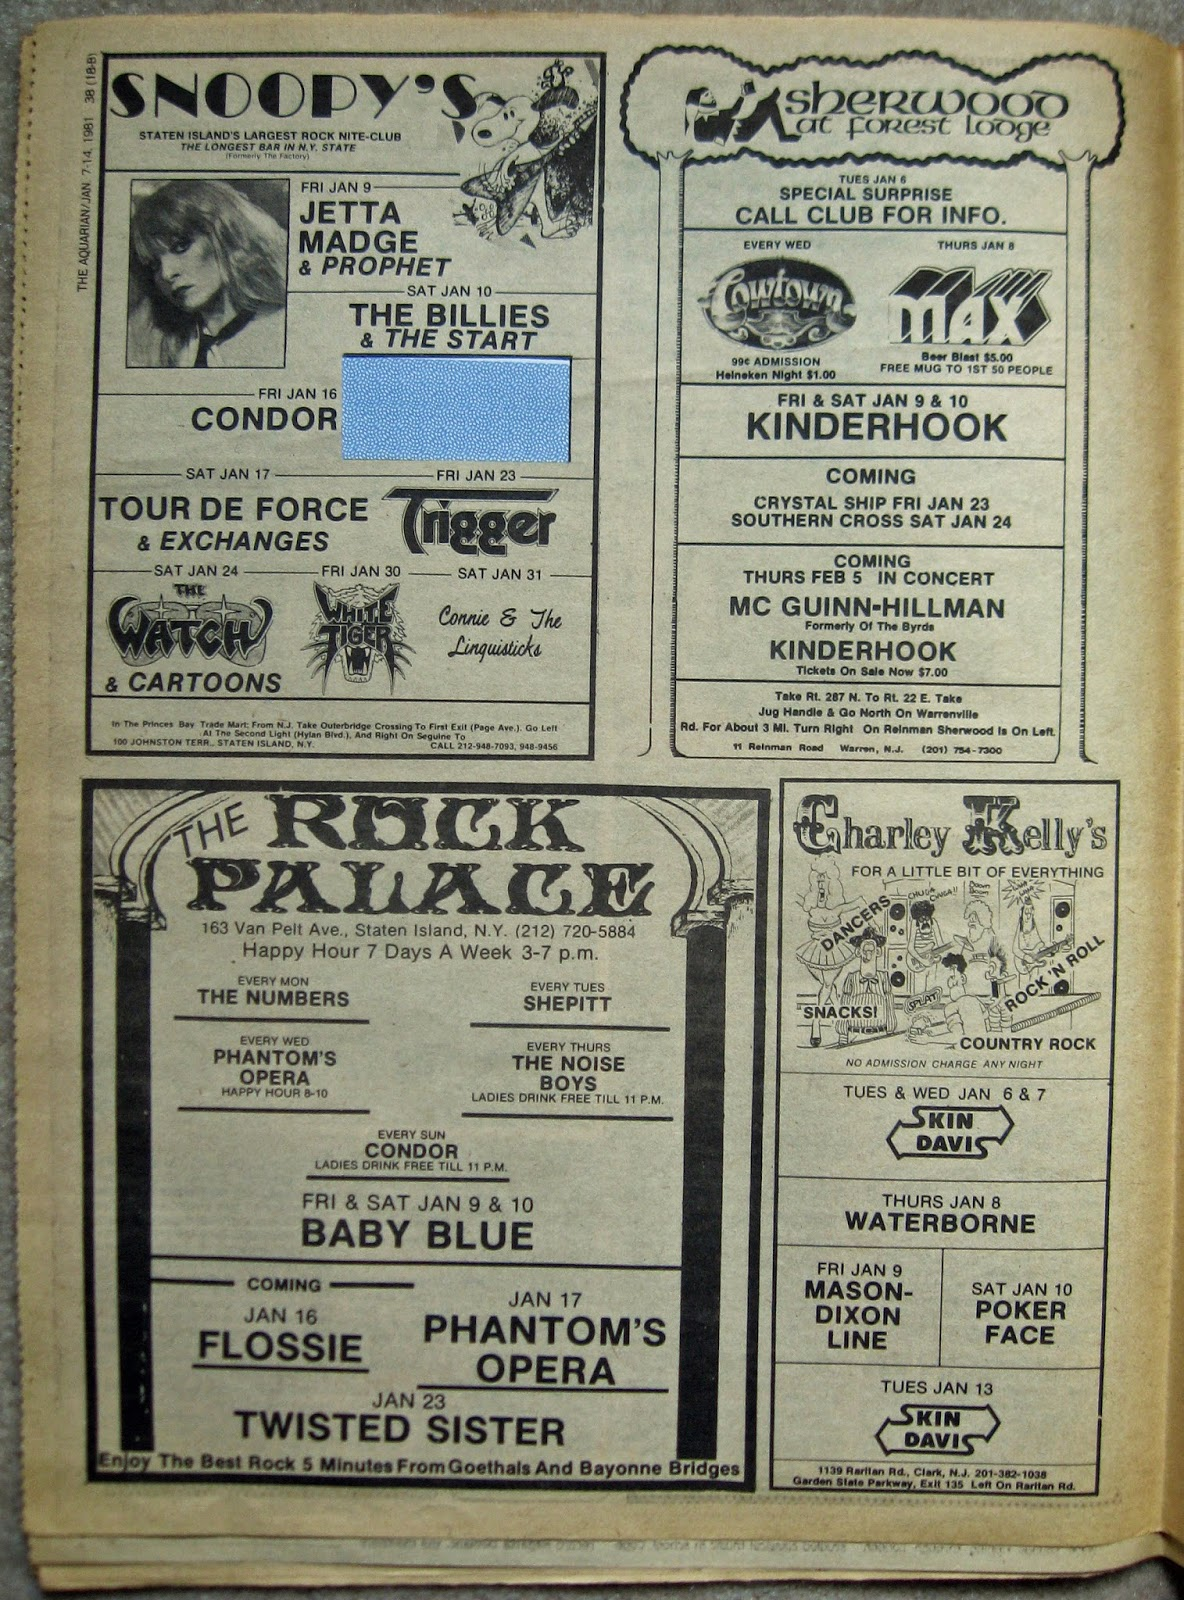 Snoopy's - The Rock Palace - Sherwood At Forest Lodge - Charley Kelly's band line ups January 1981